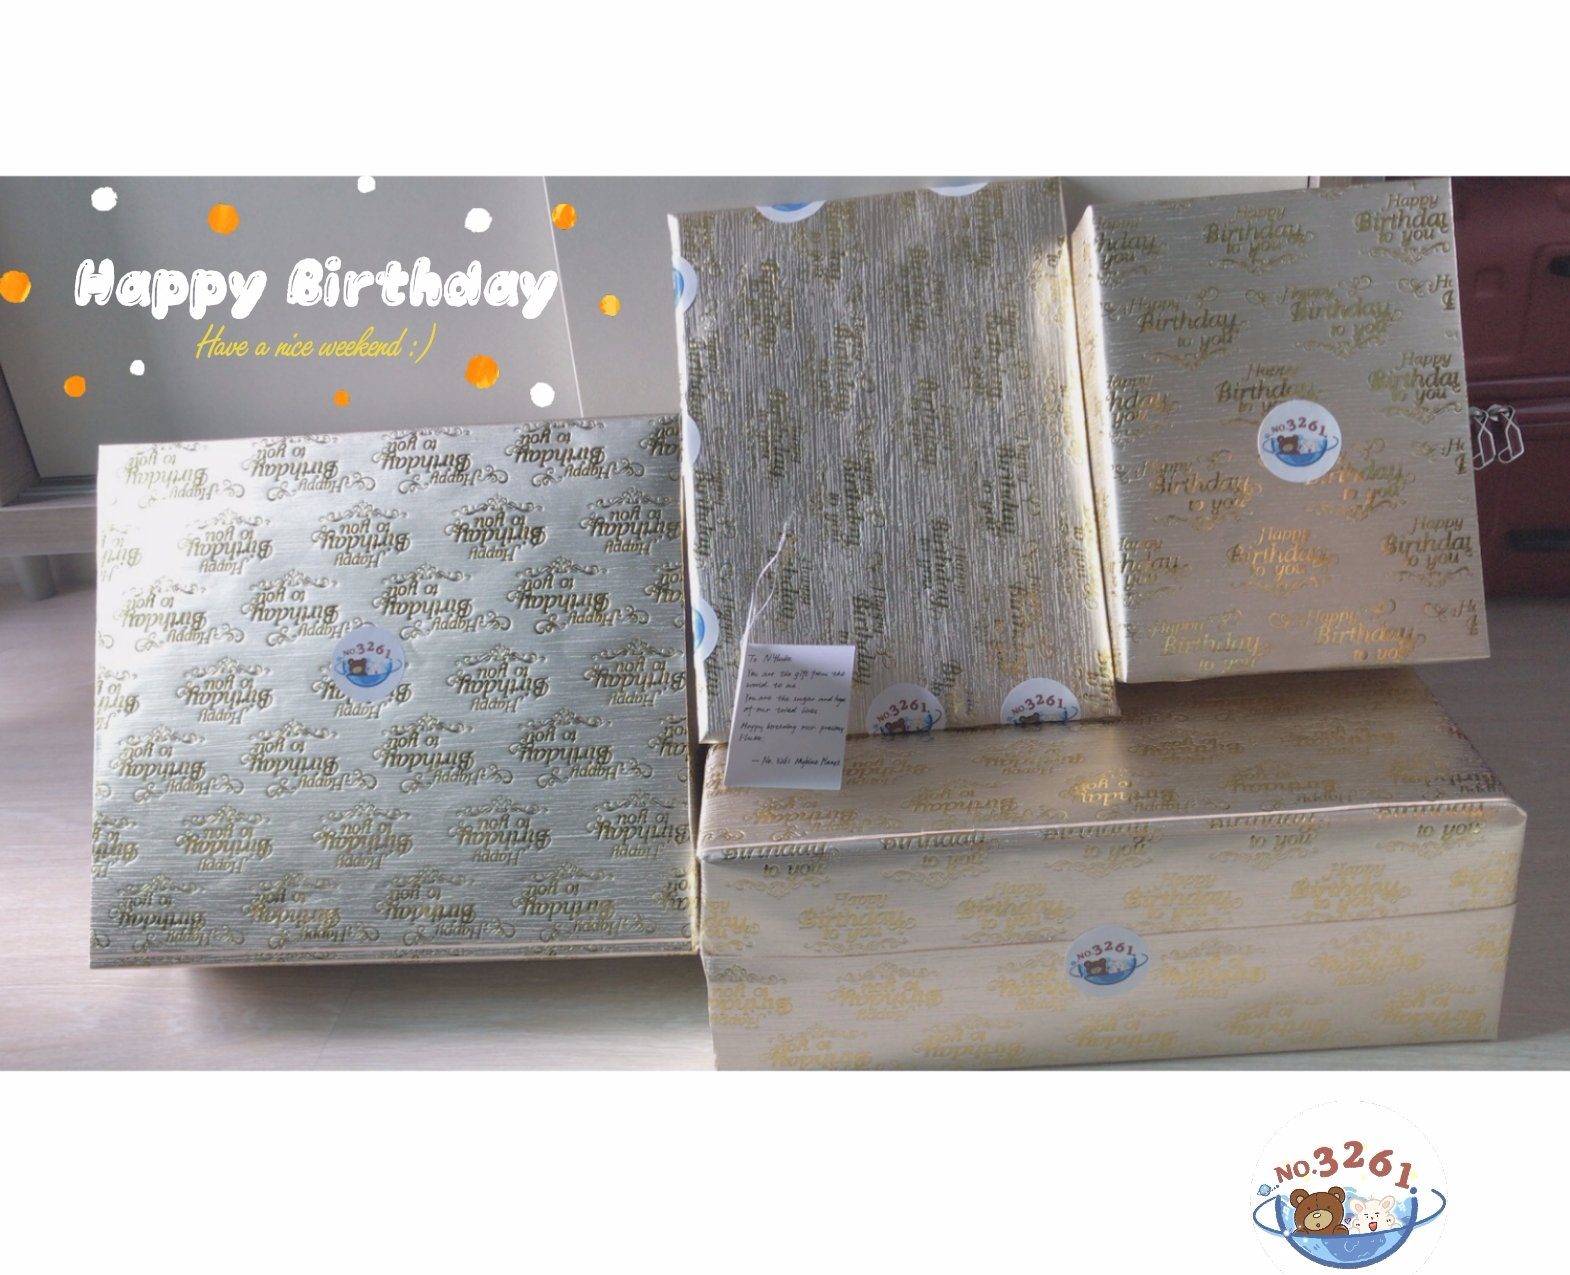 [3261 ] Gifts from 3261 Planet Happy Birthday My little prince             ~